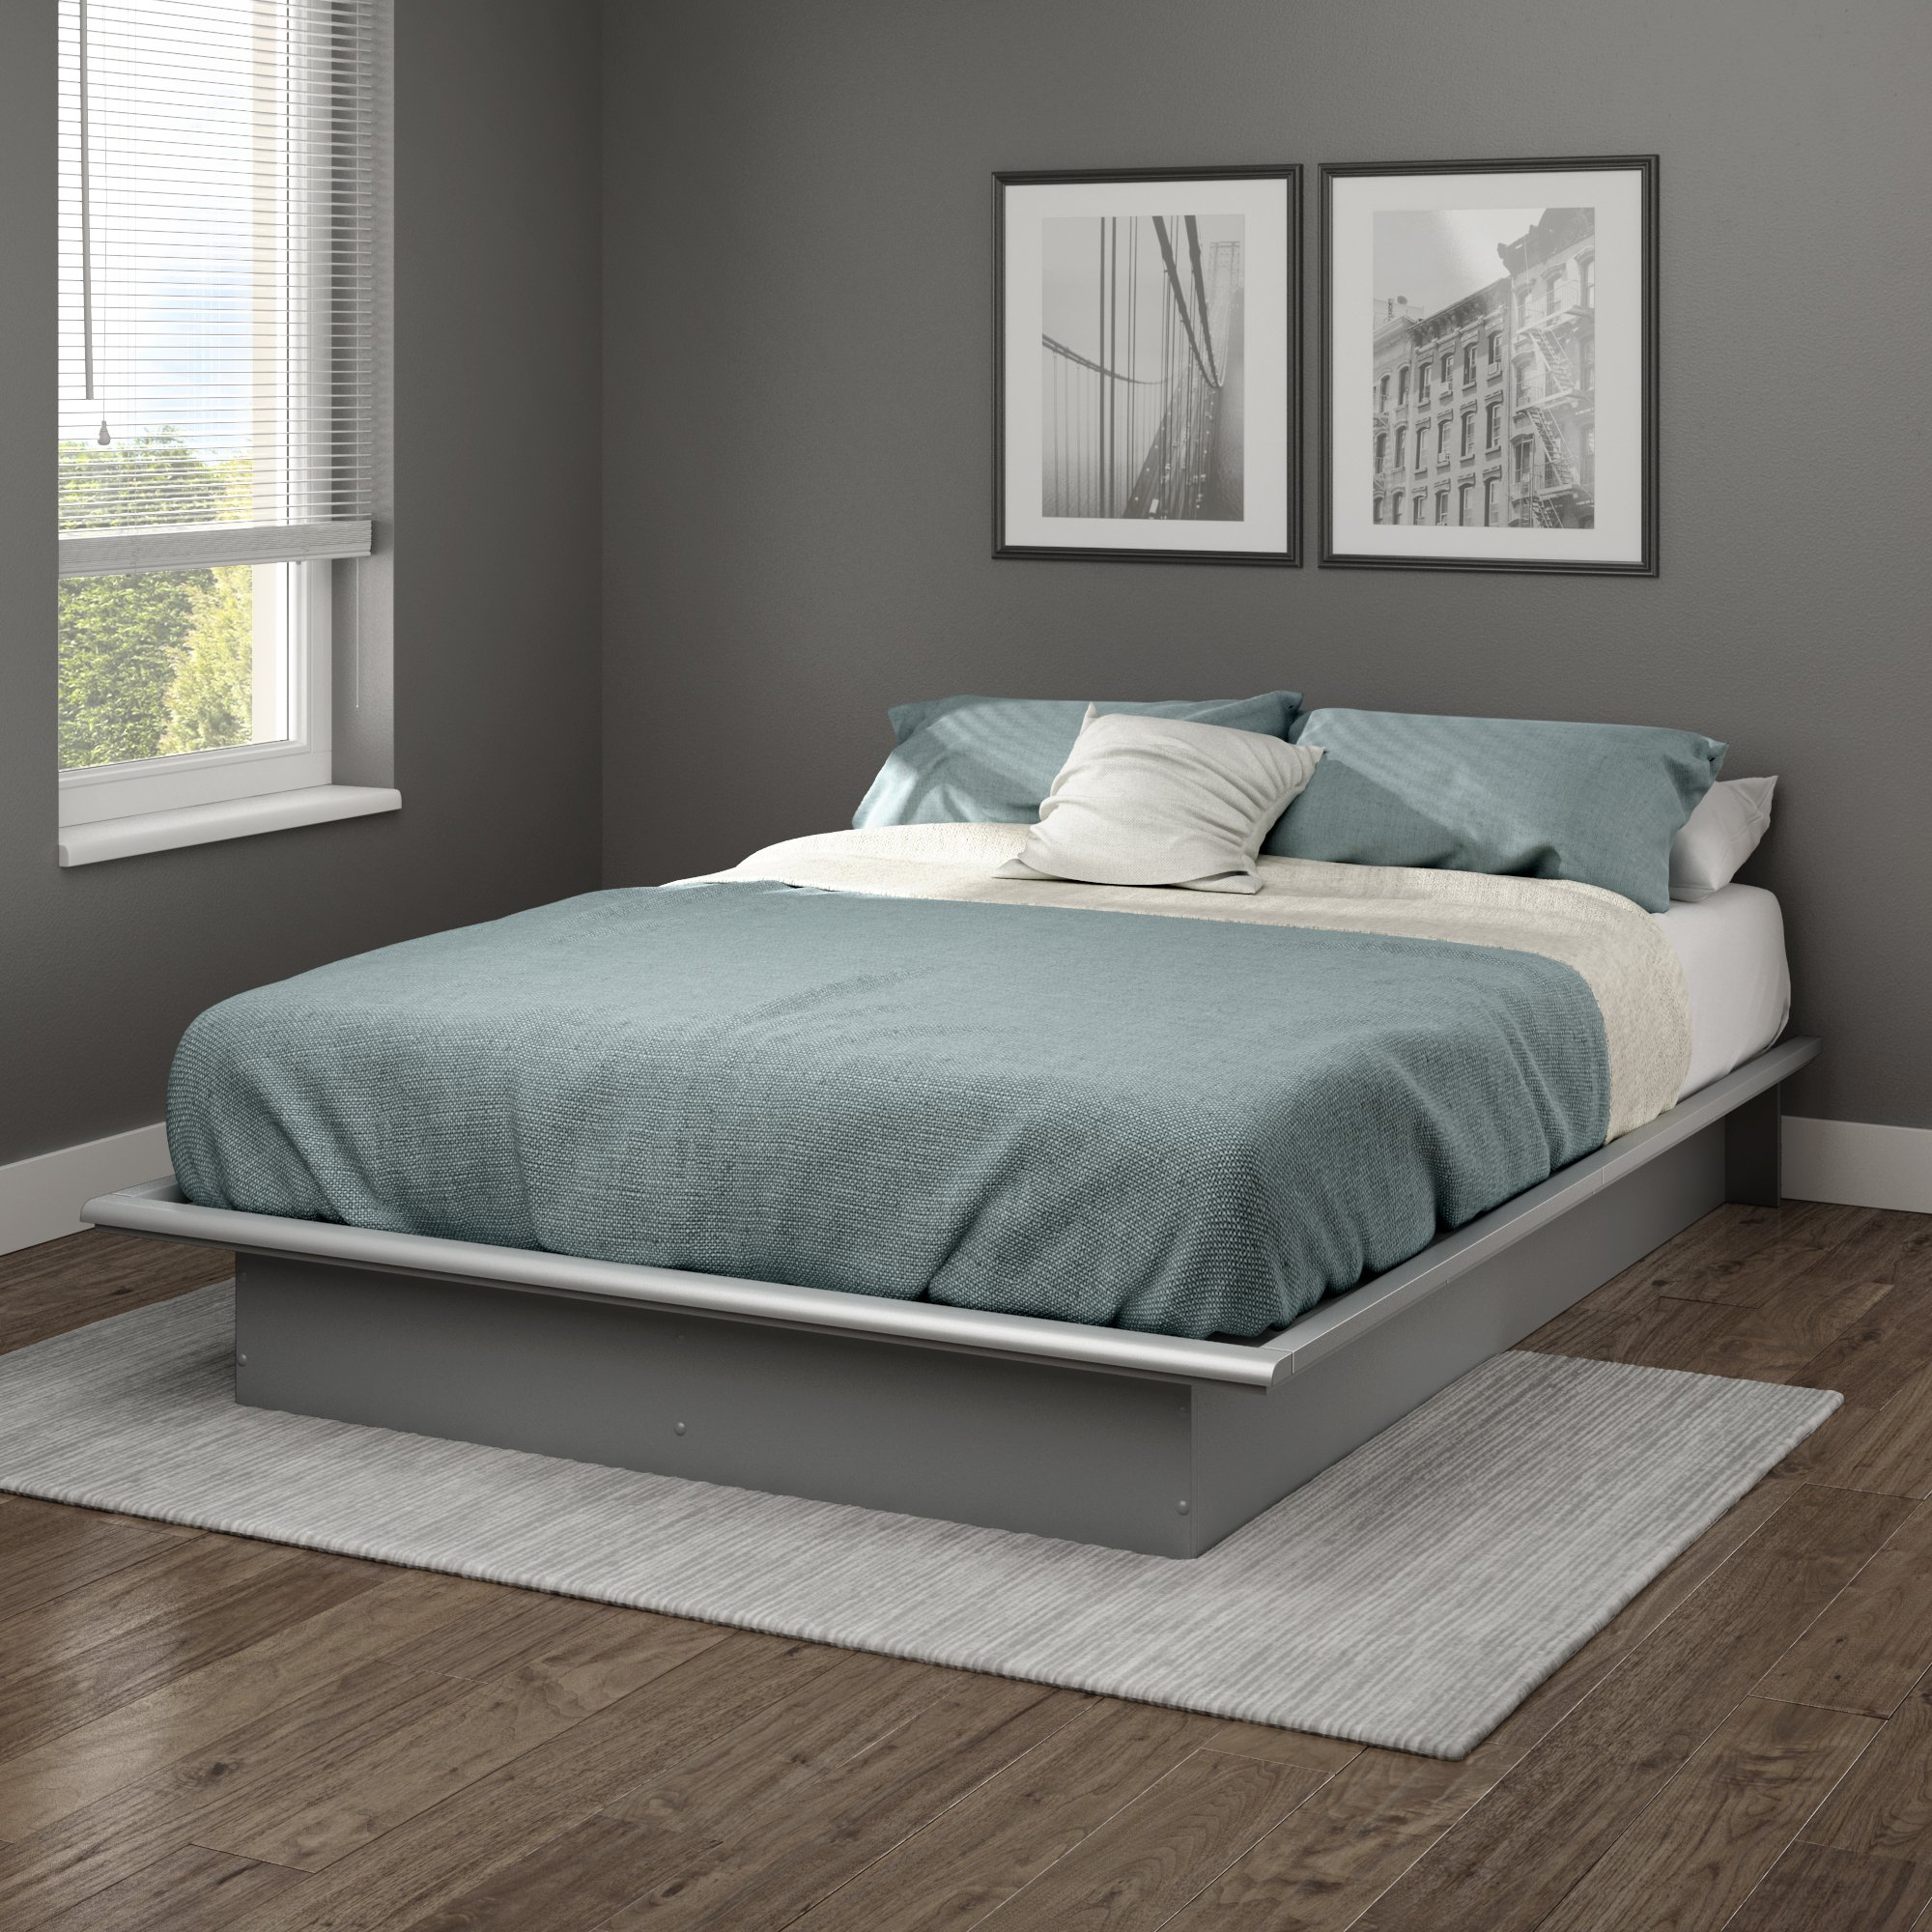 South Shore 10439 Step One Full Platform Bed (54''), Soft Gray, 54'', by South Shore